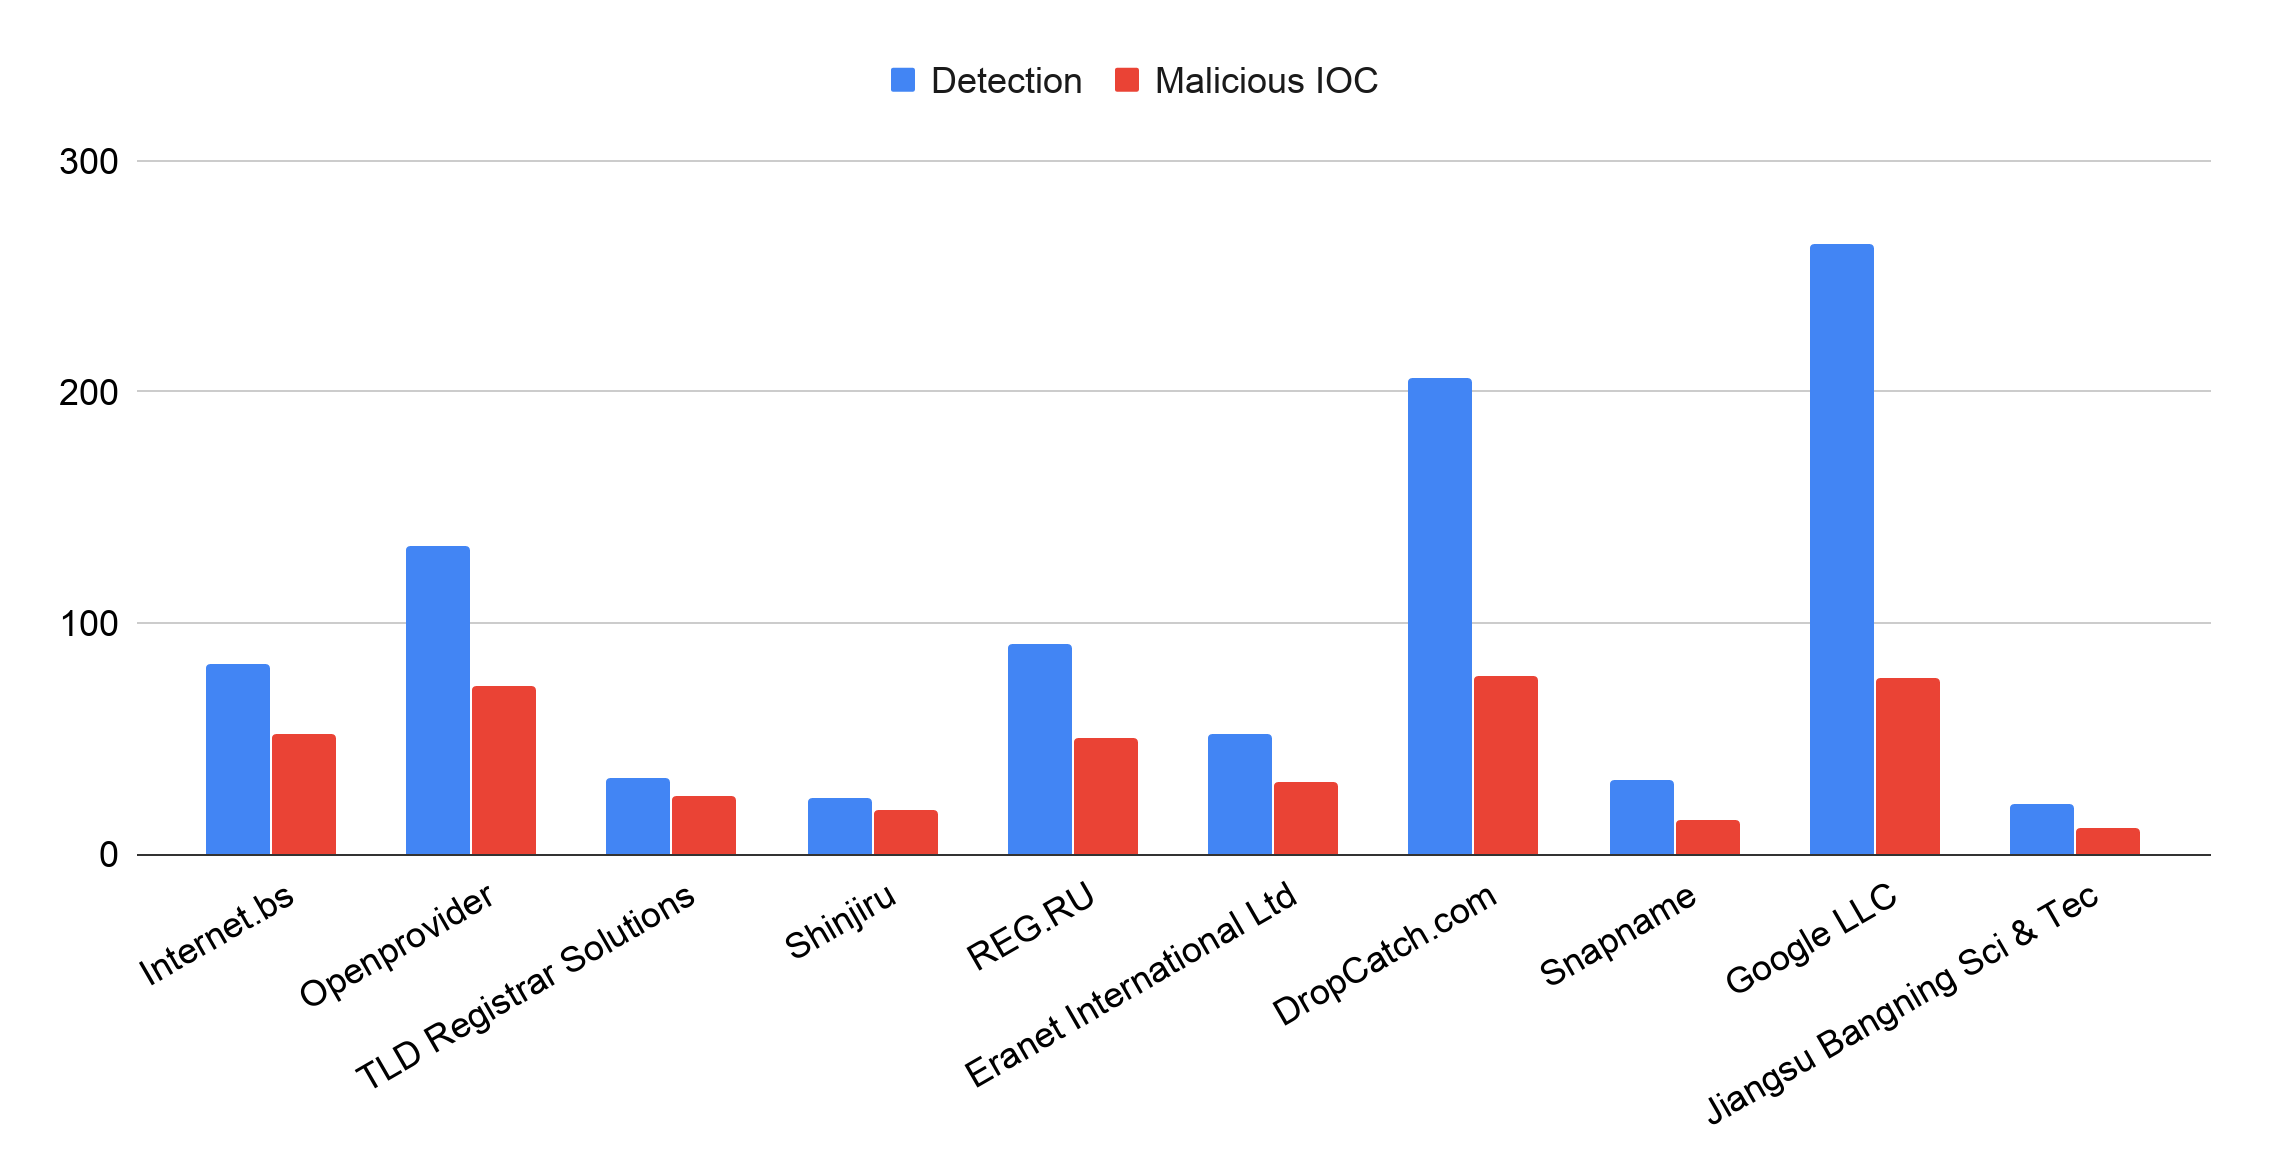 This graph shows the top 10 registrars most abused by cybersquatting in December 2019, this time in terms of squatting detected (blue bars) and malicious IOC (red bars)